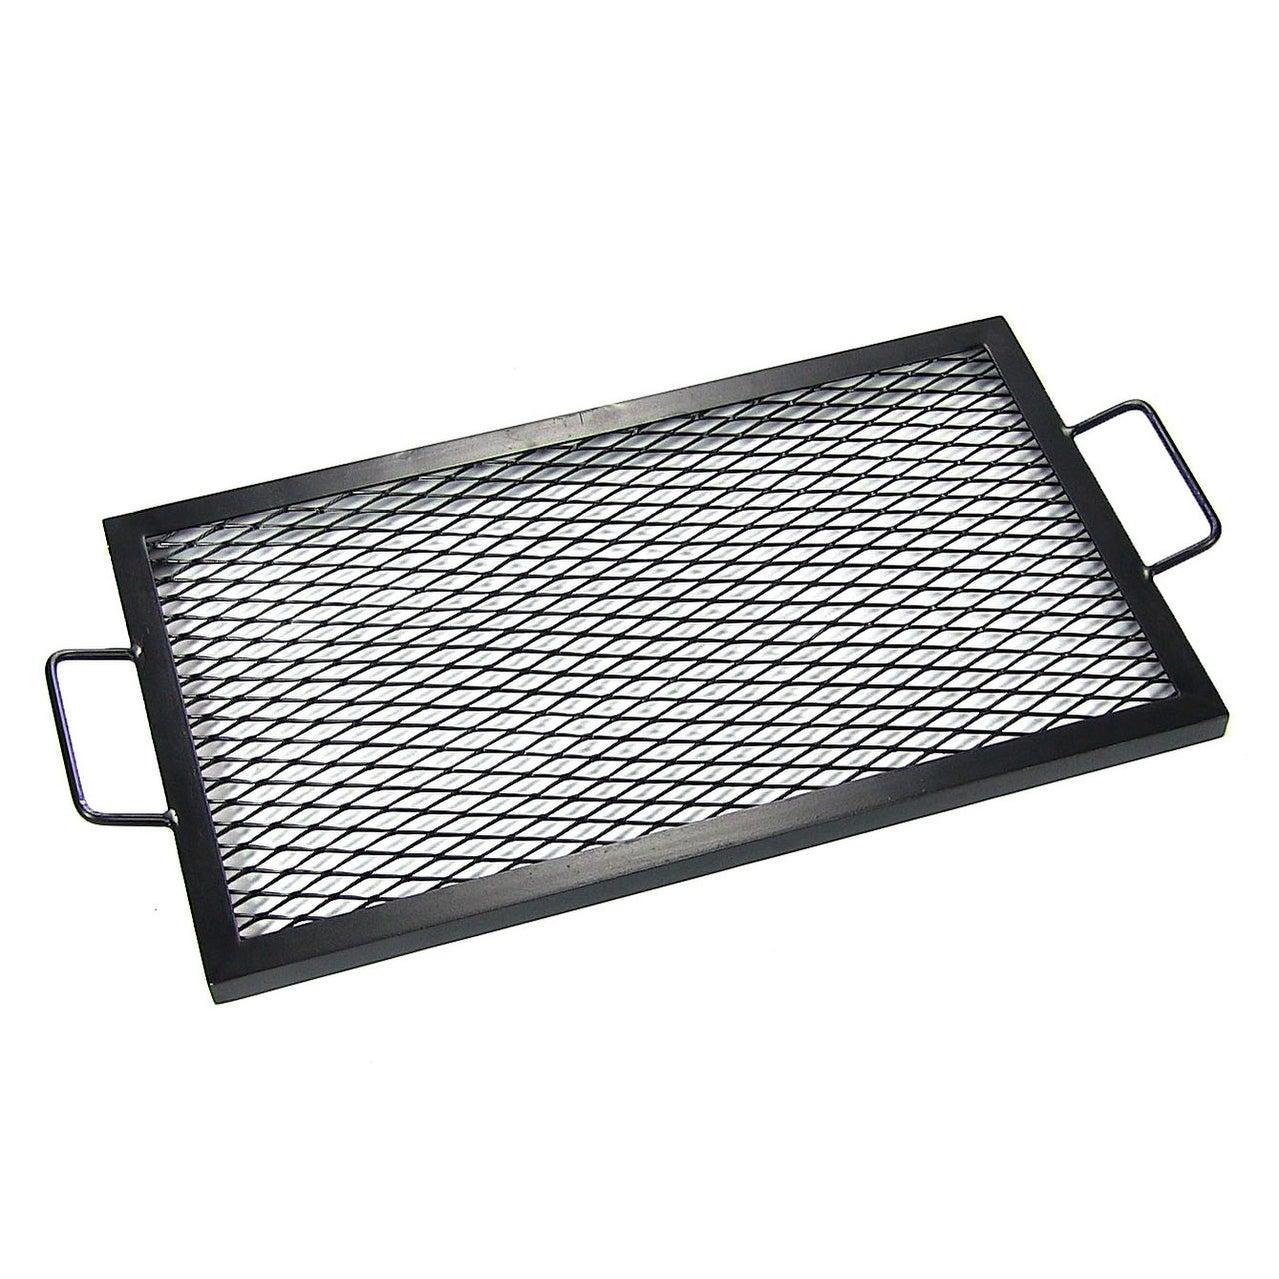 Sunnydaze X-Marks Rectangle Fire Pit Cooking Grill, Size Options Available - Black - Thumbnail 3